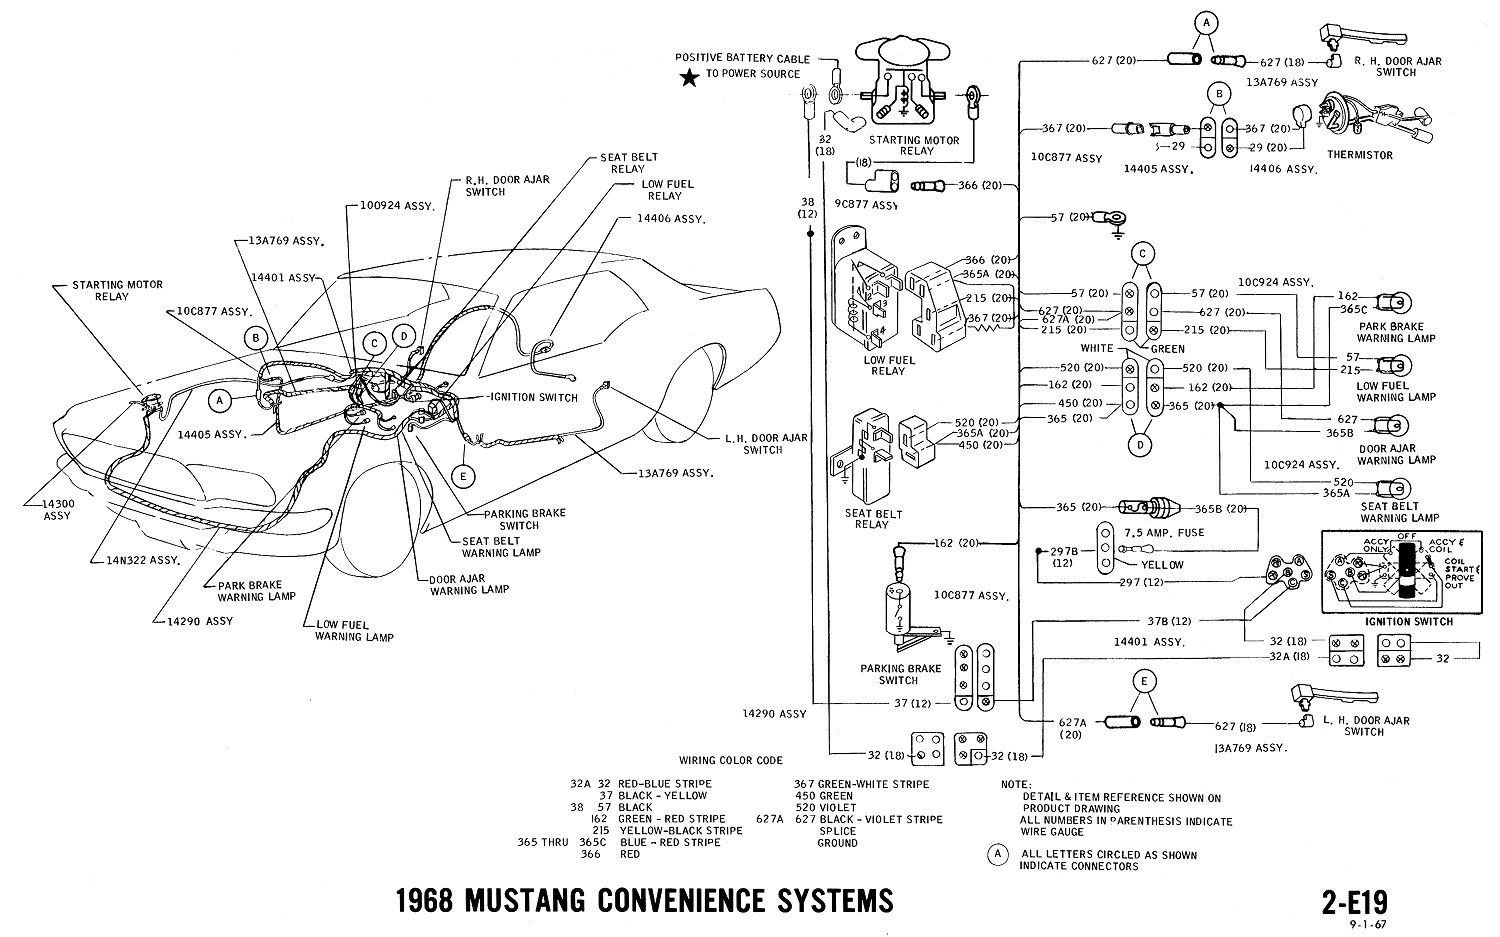 1968 mustang wiring diagrams and vacuum schematics average joe 1967 Firebird Wiring Schematic